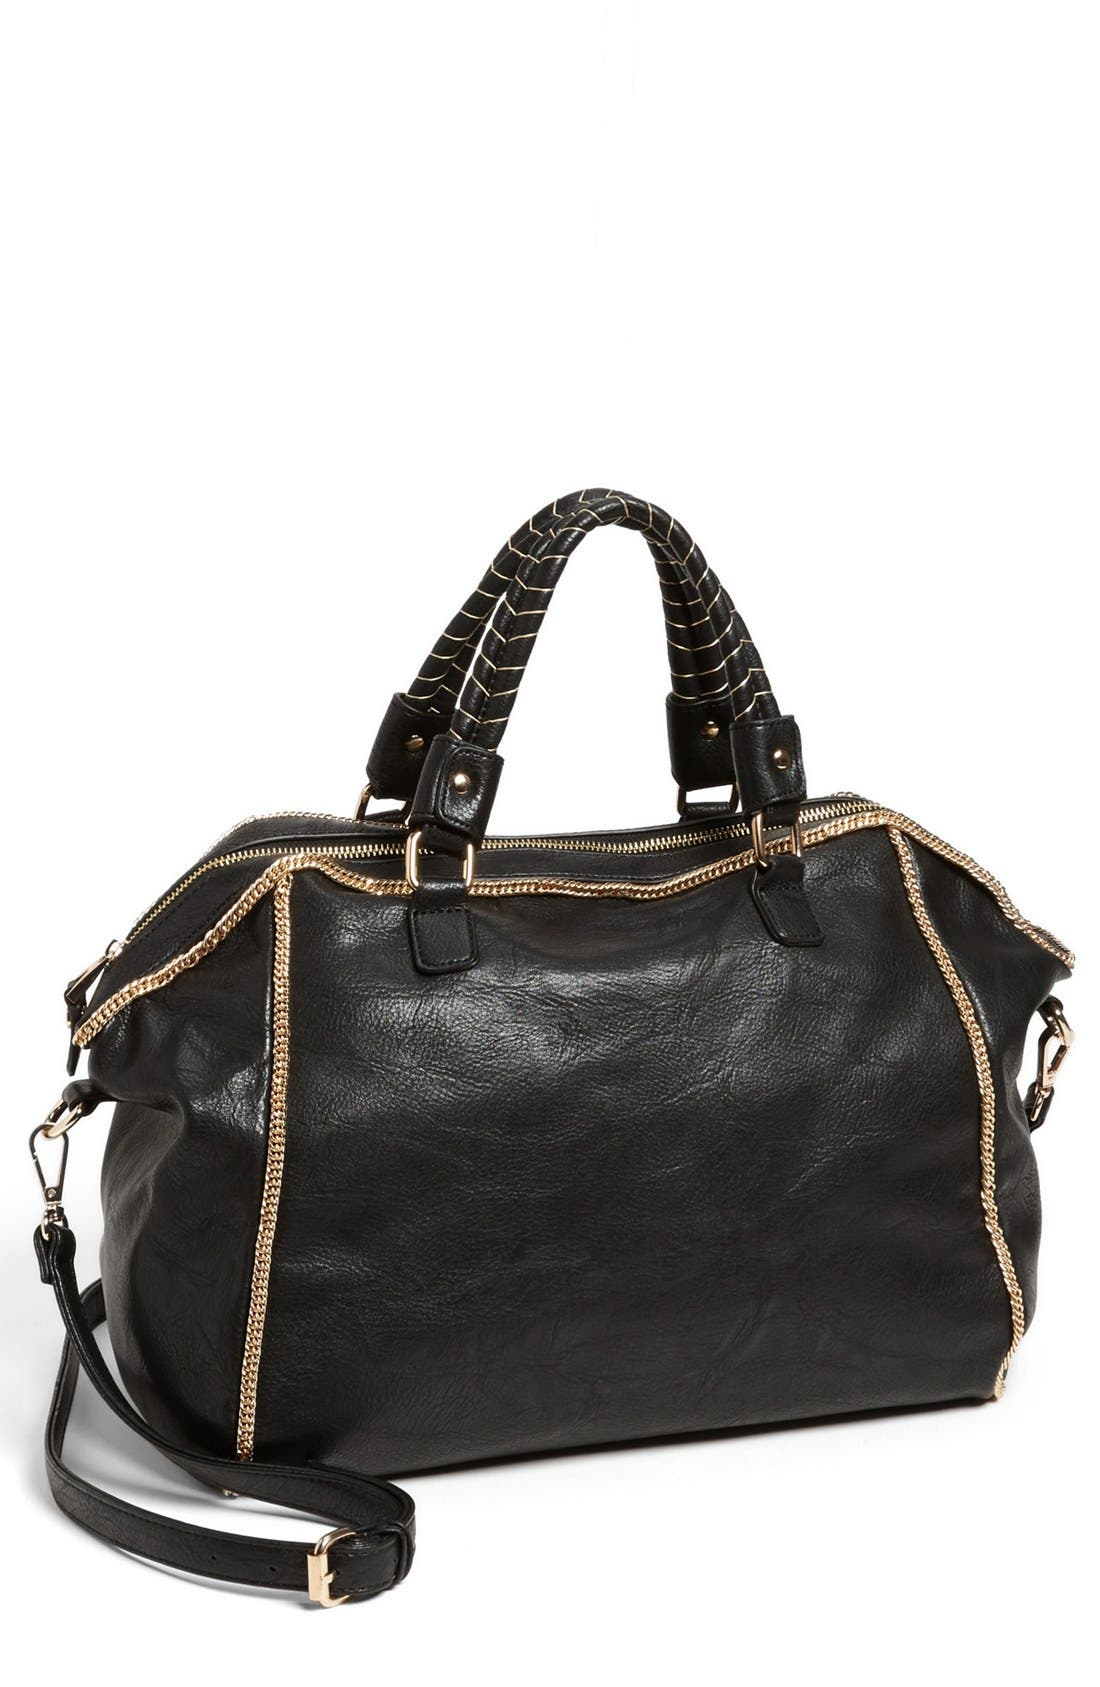 'Janae' Faux Leather Satchel, Main, color, 001